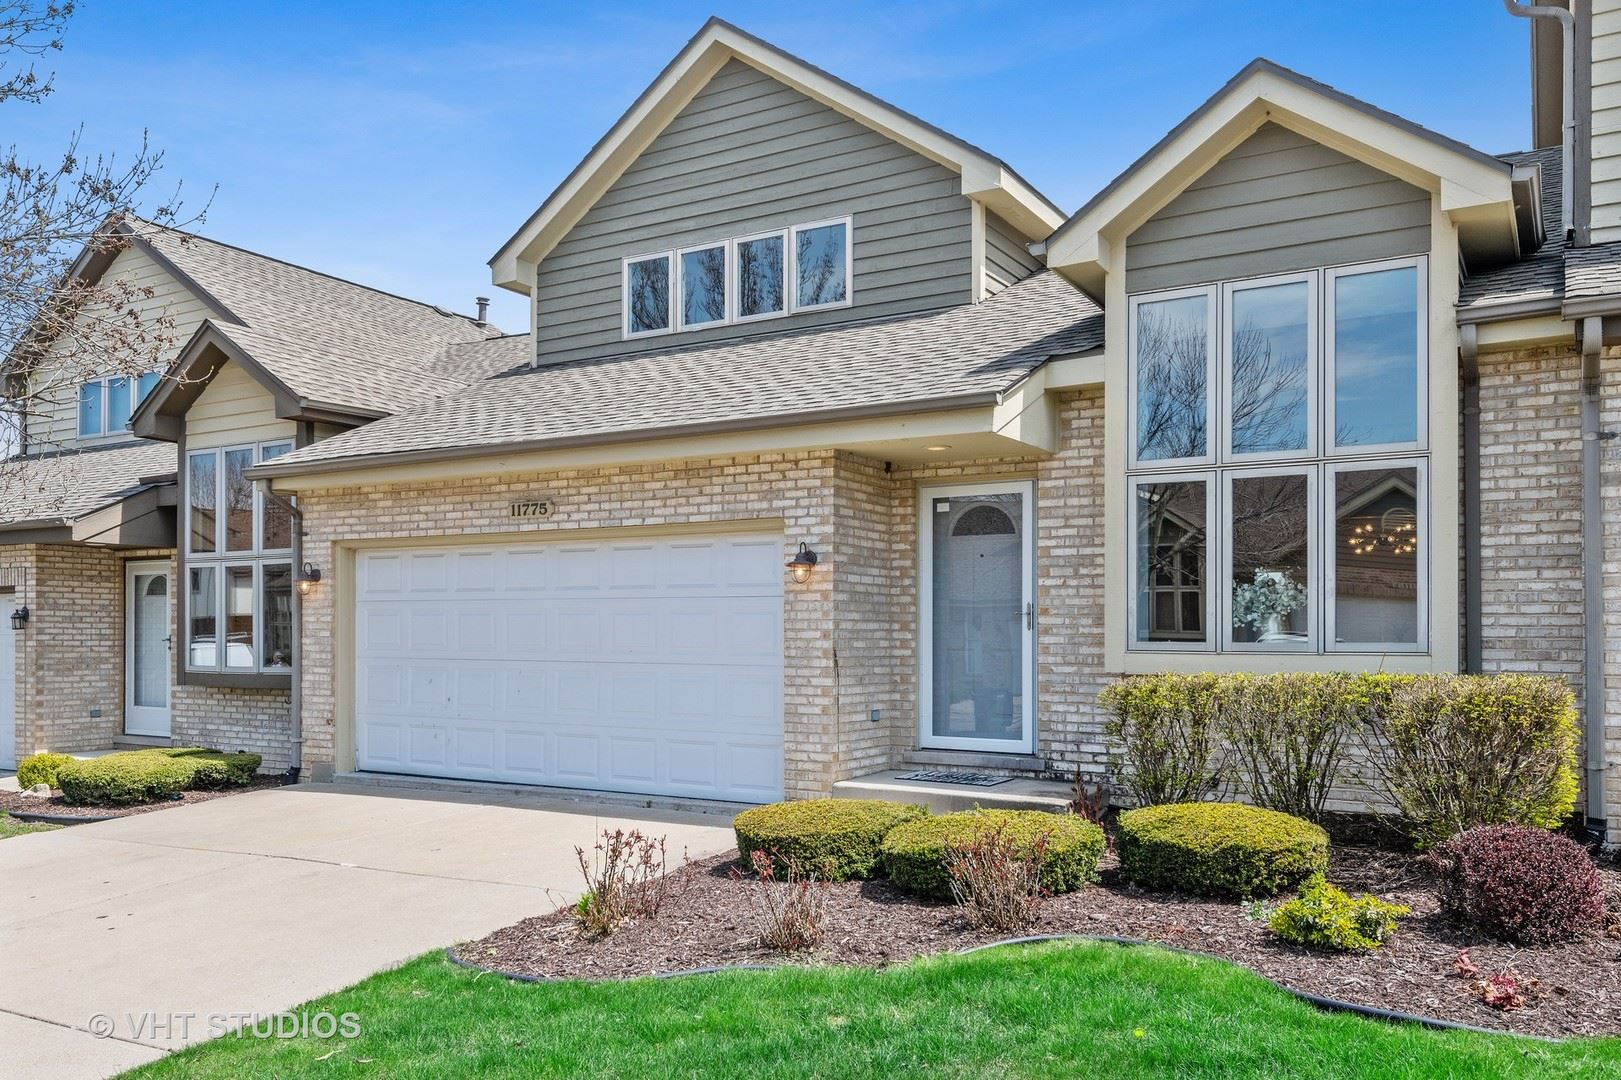 11775 S SEAGULL Lane, Palos Heights, IL 60463 - #: 10727493